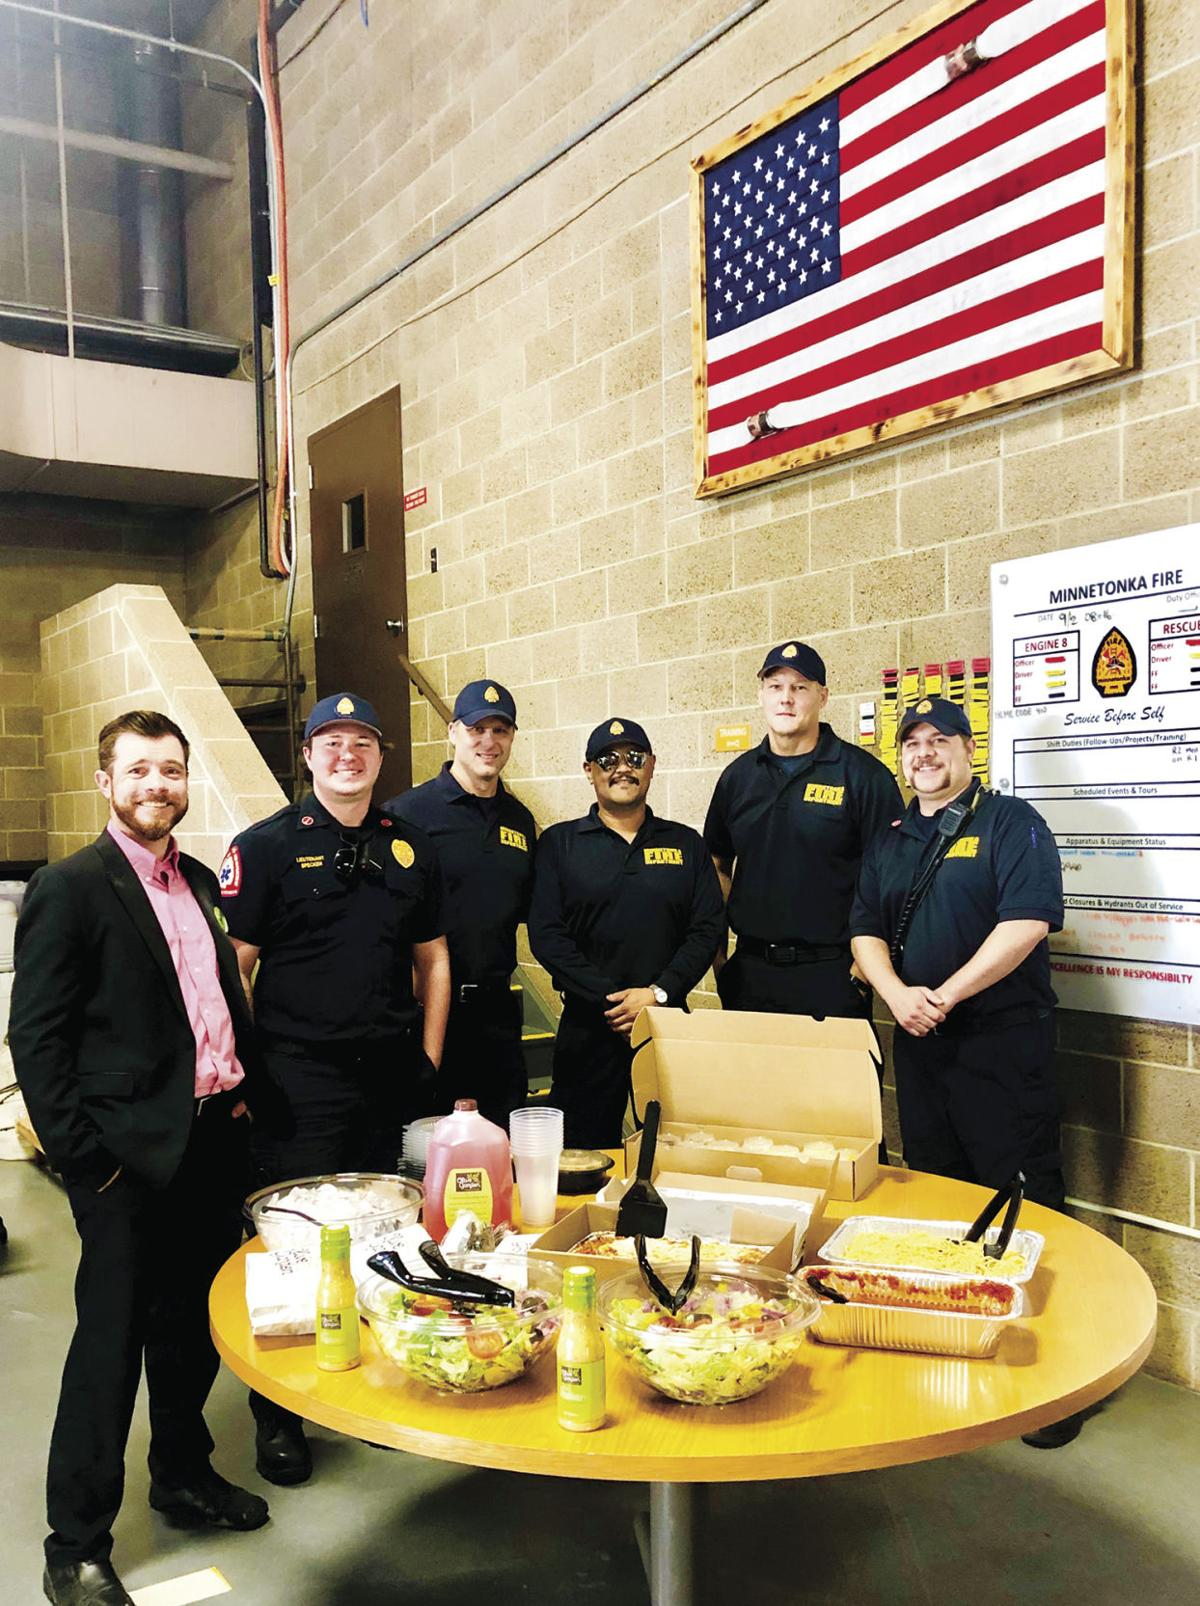 St. Louis Park Olive Garden helps Minnetonka firefighters have fun at work (photos) - 2